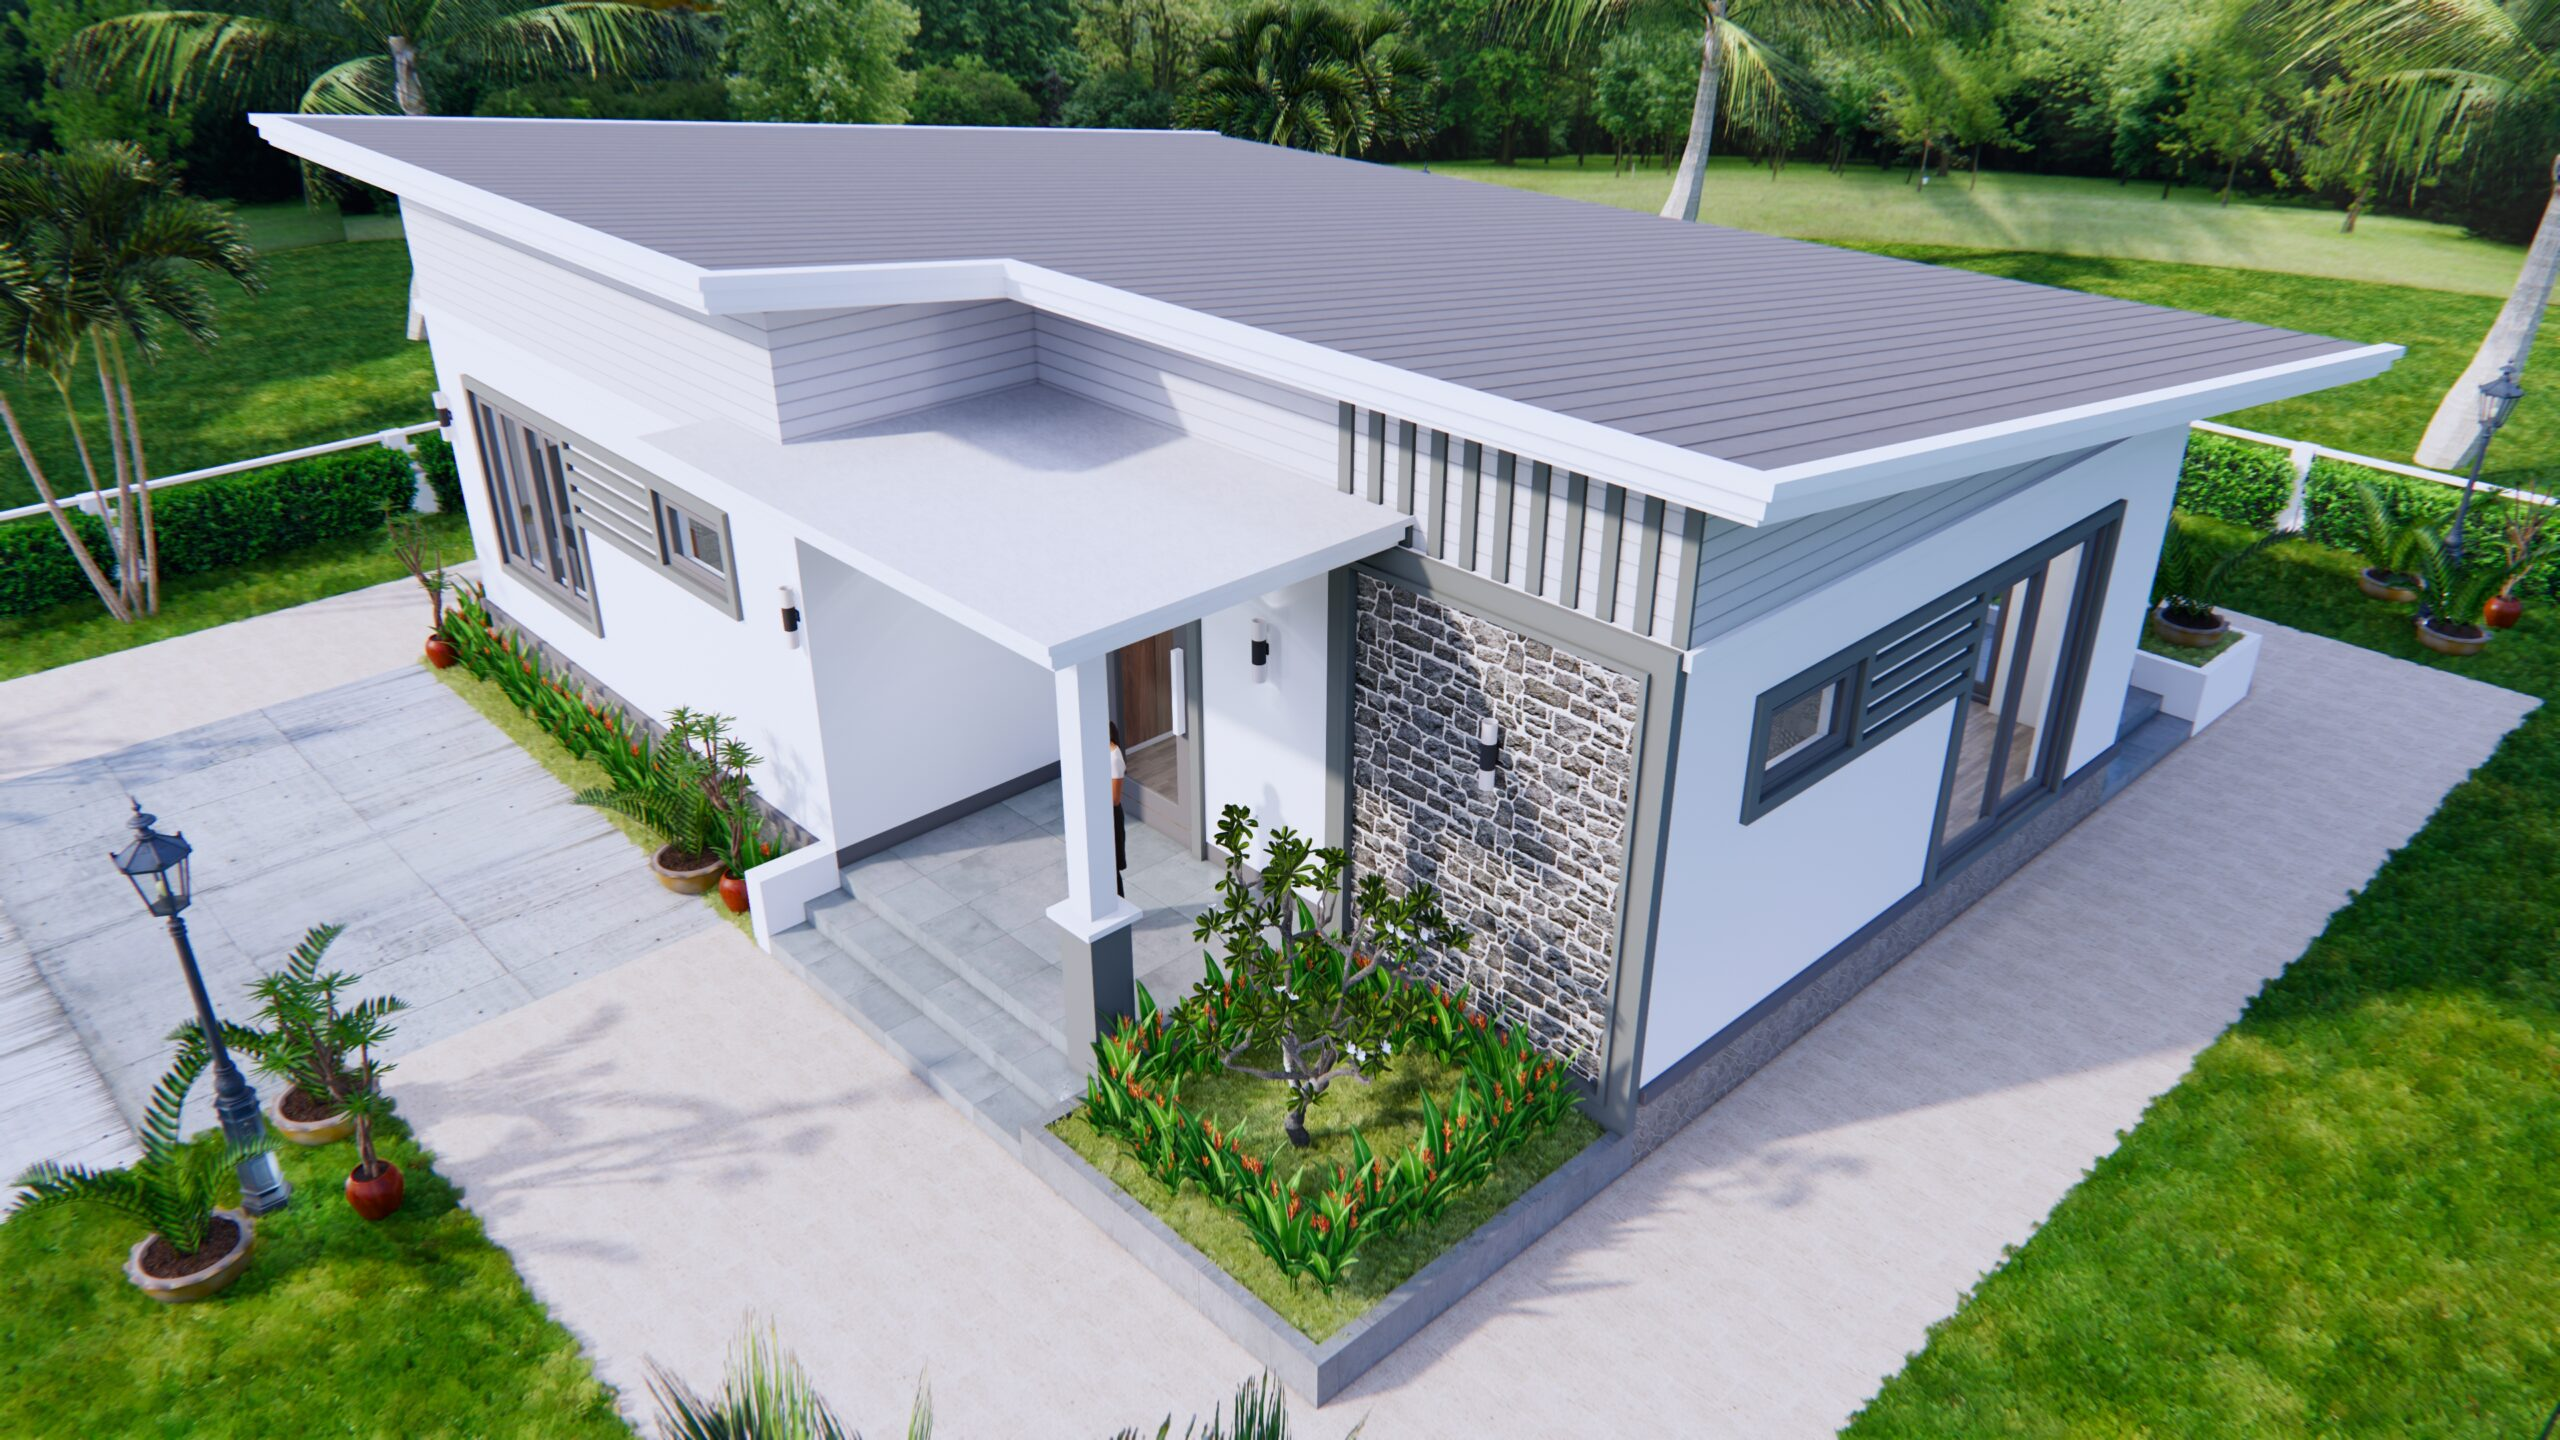 One Storey Building 12x9 Meter 40x30 Feet 2 Beds 5